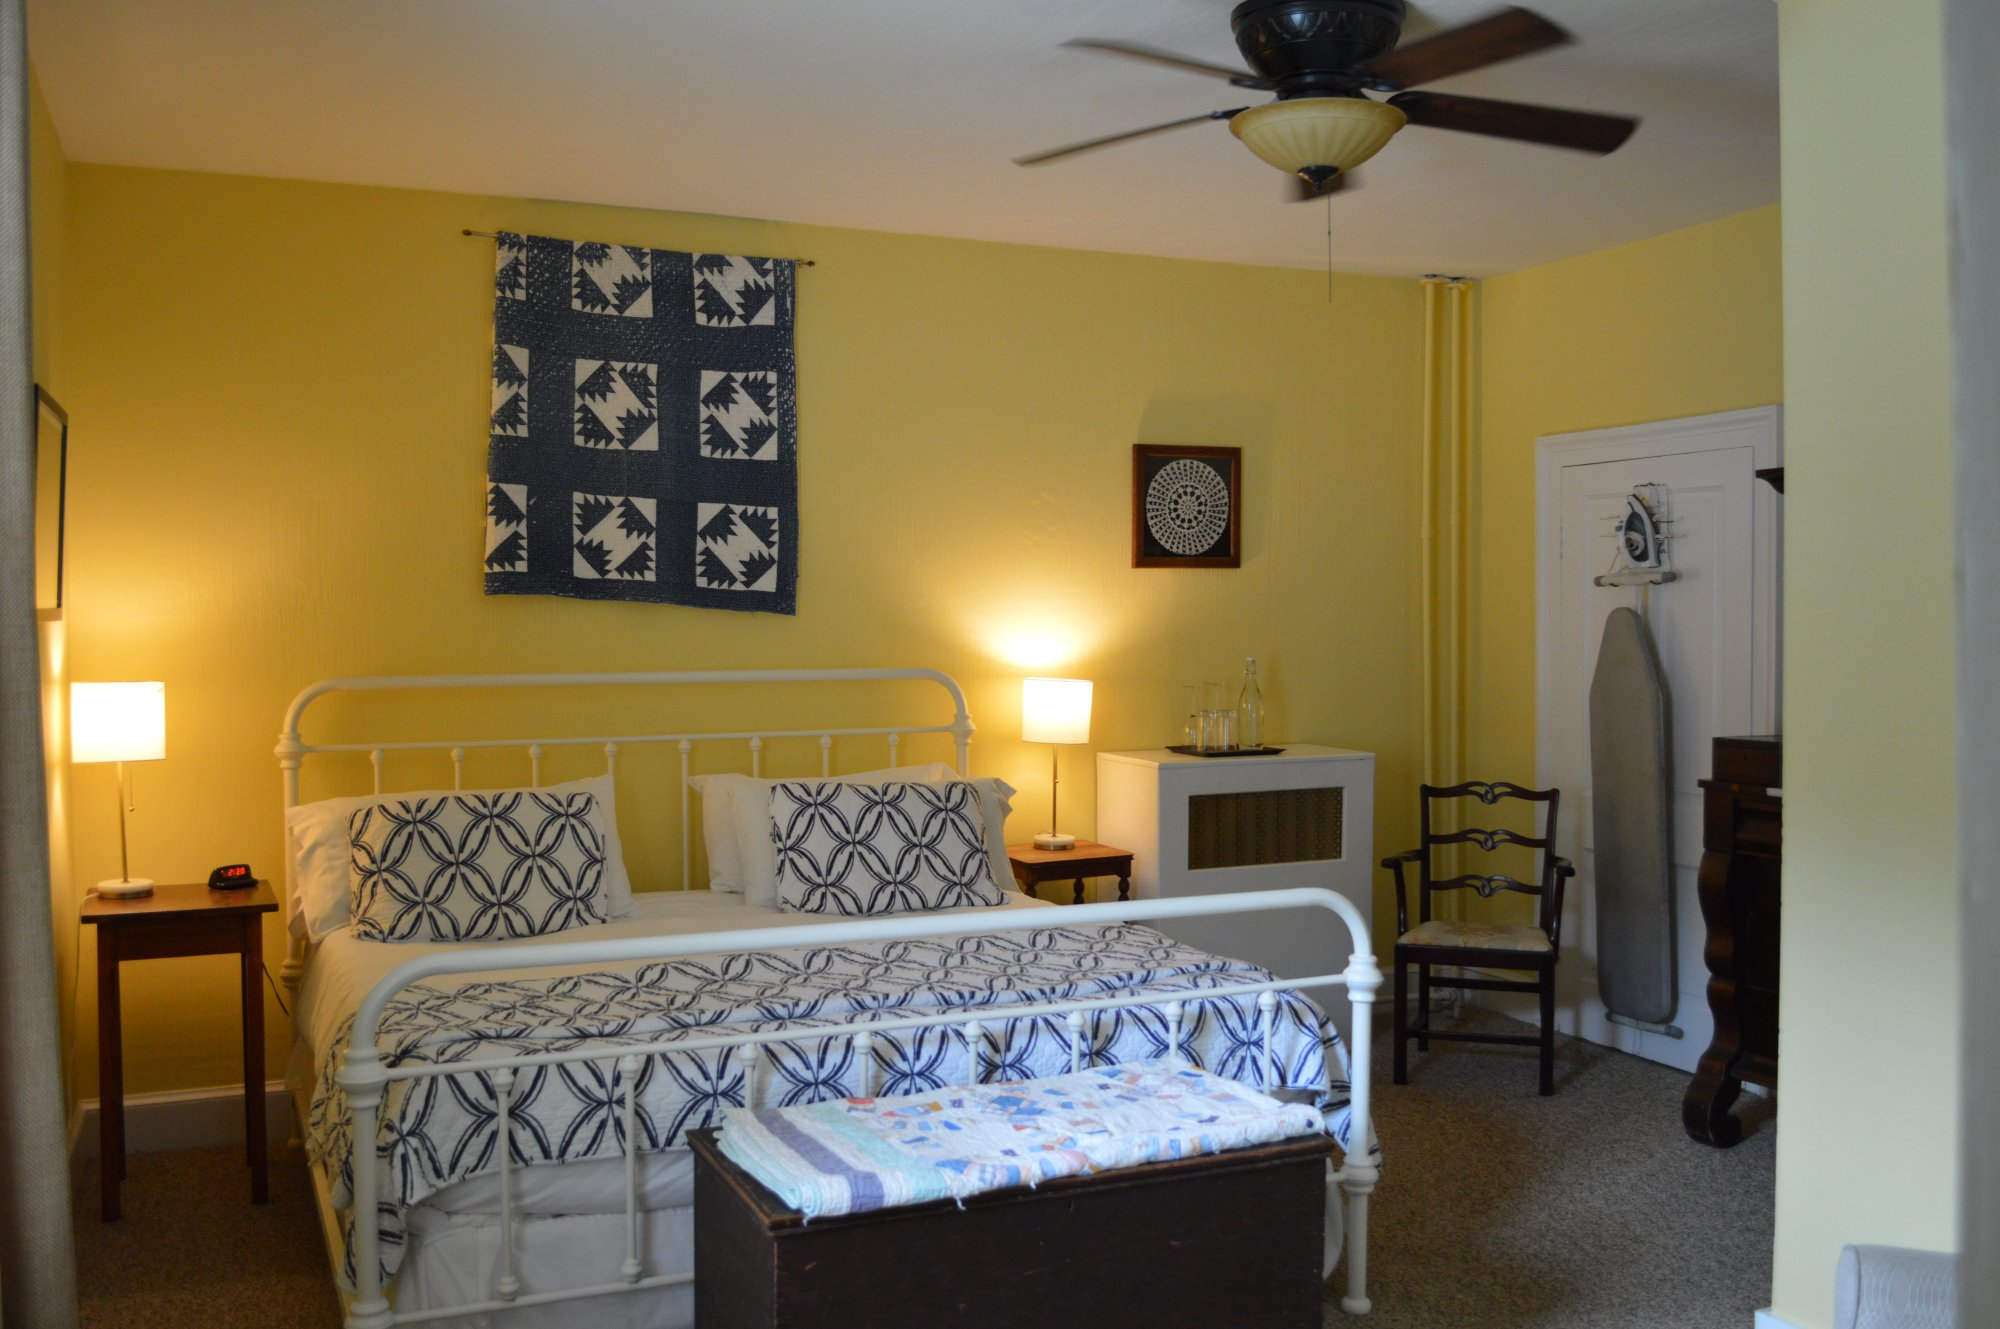 Quilt Room at the Inn at Gristmill Square in Warm Springs, Virginia